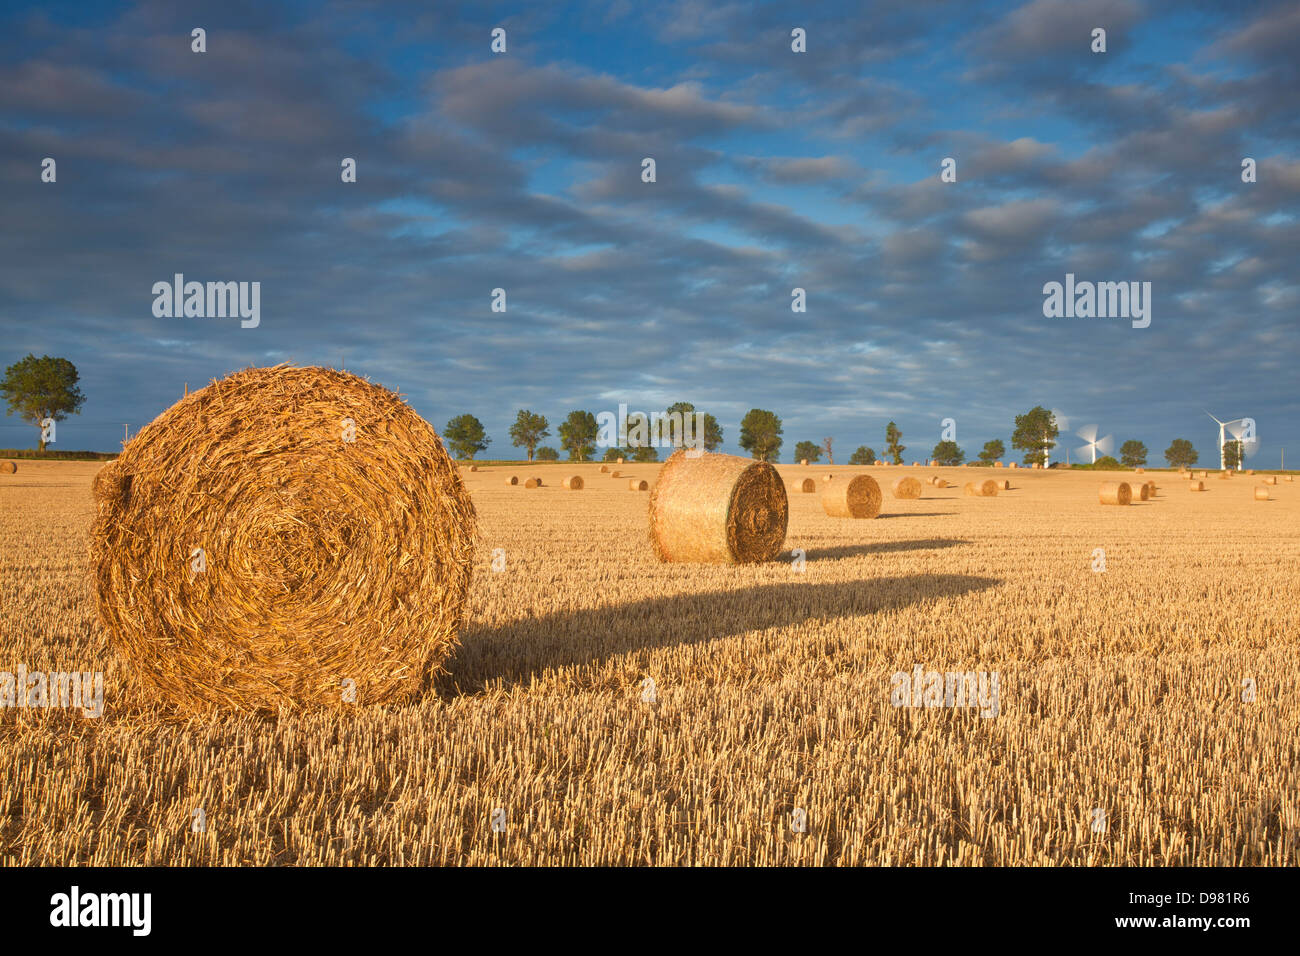 Hay Bales at first light in front of West Somerton / Winterton windfarm in the distance - Stock Image